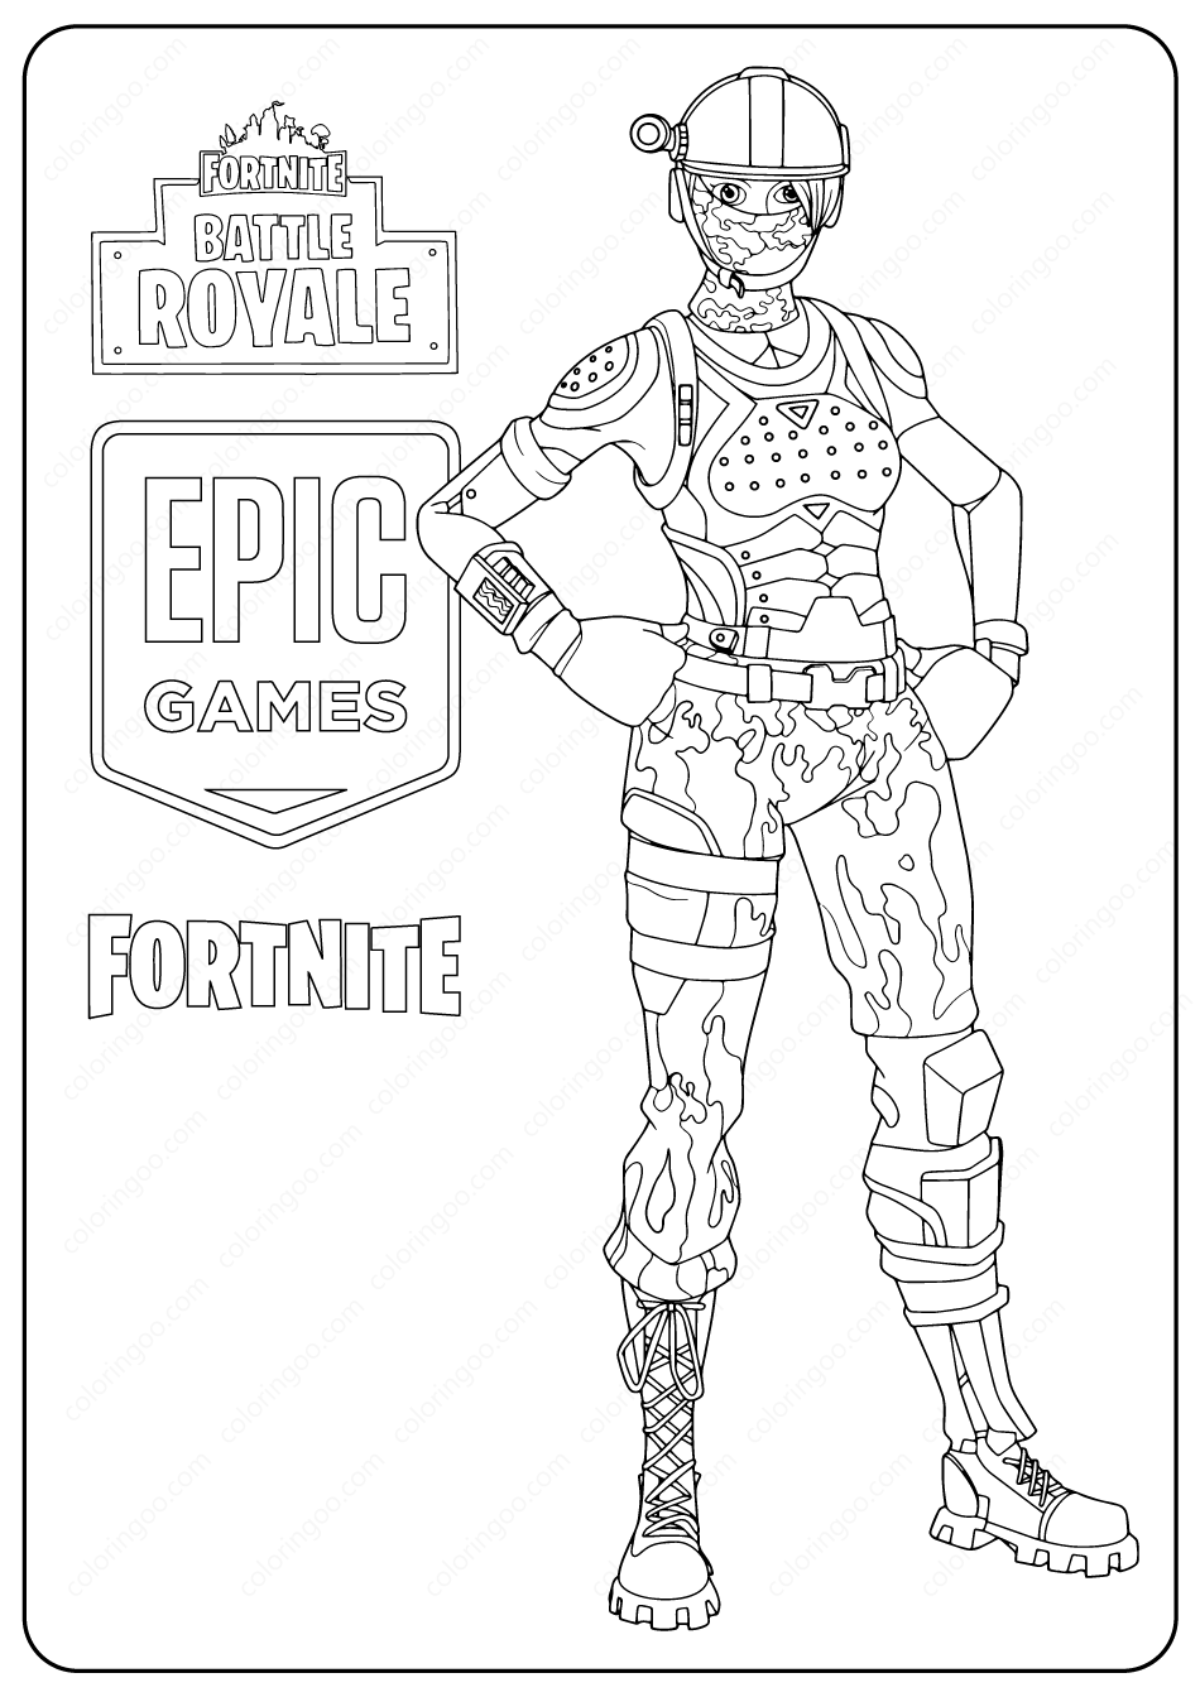 Fortnite Skins To Colour Free Printable Fortnite Elite Agent Skin Coloring Pages